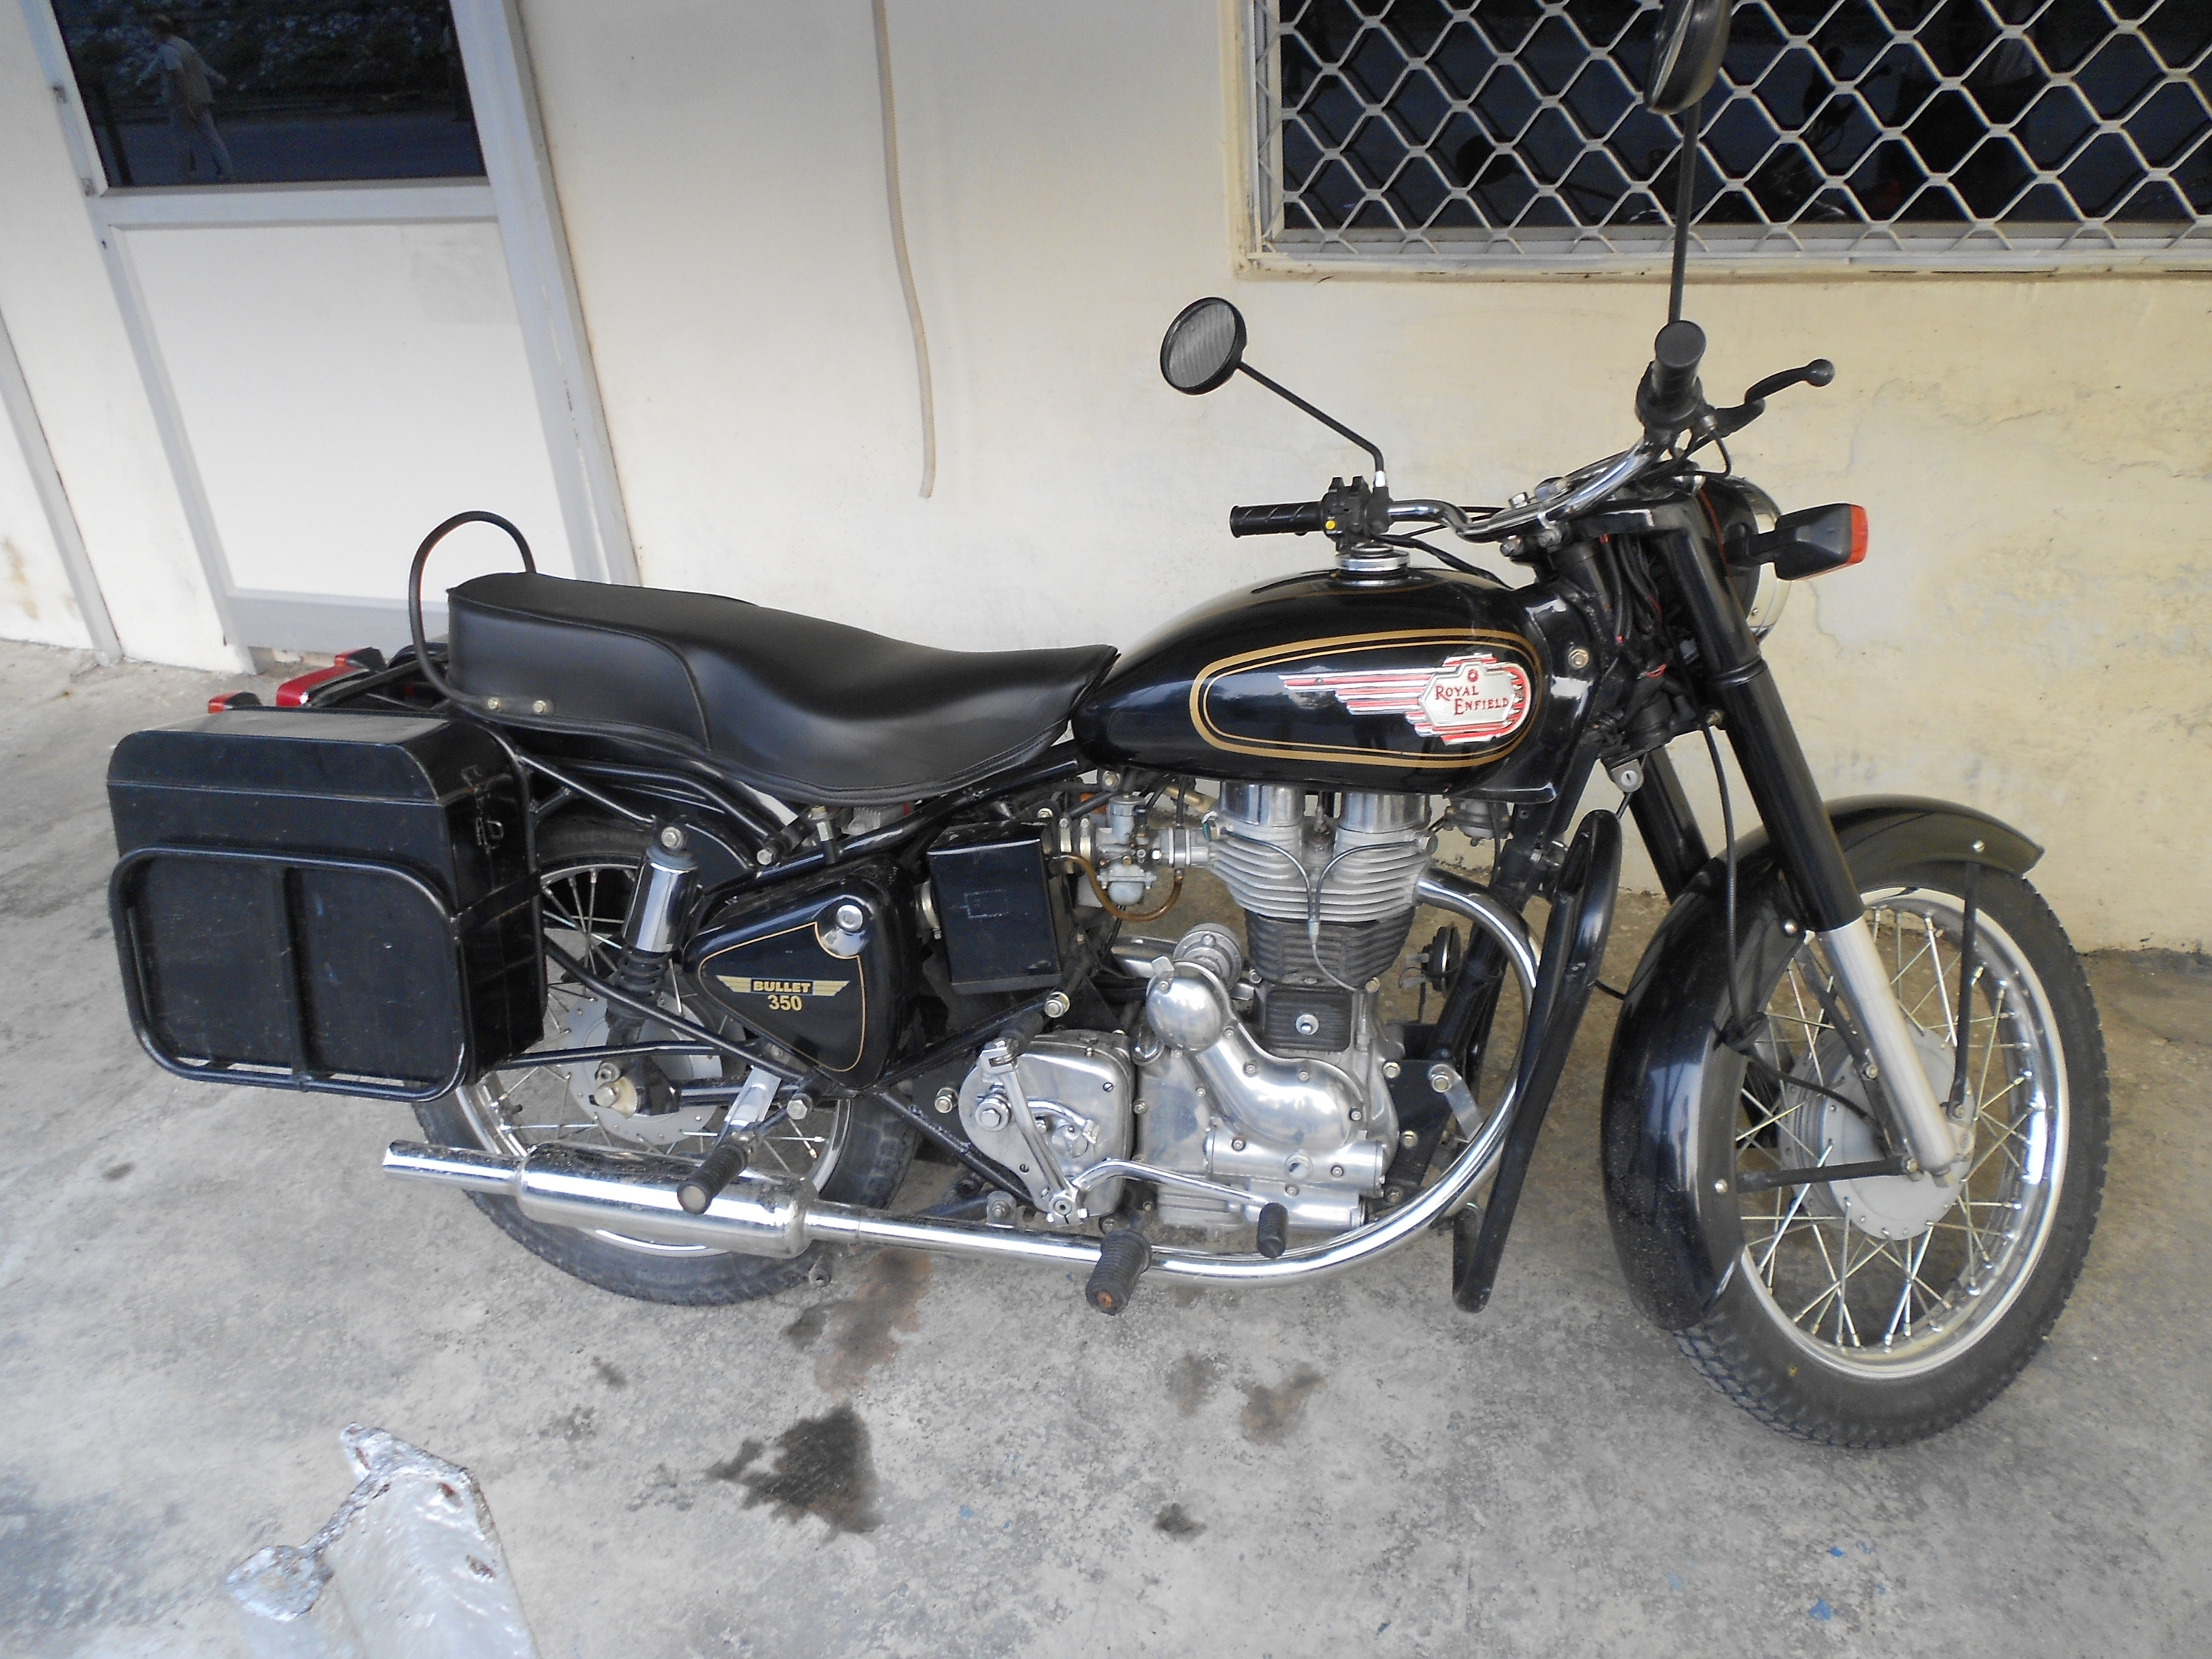 Royal Enfield Bullet 350 Army 2001 images #123107